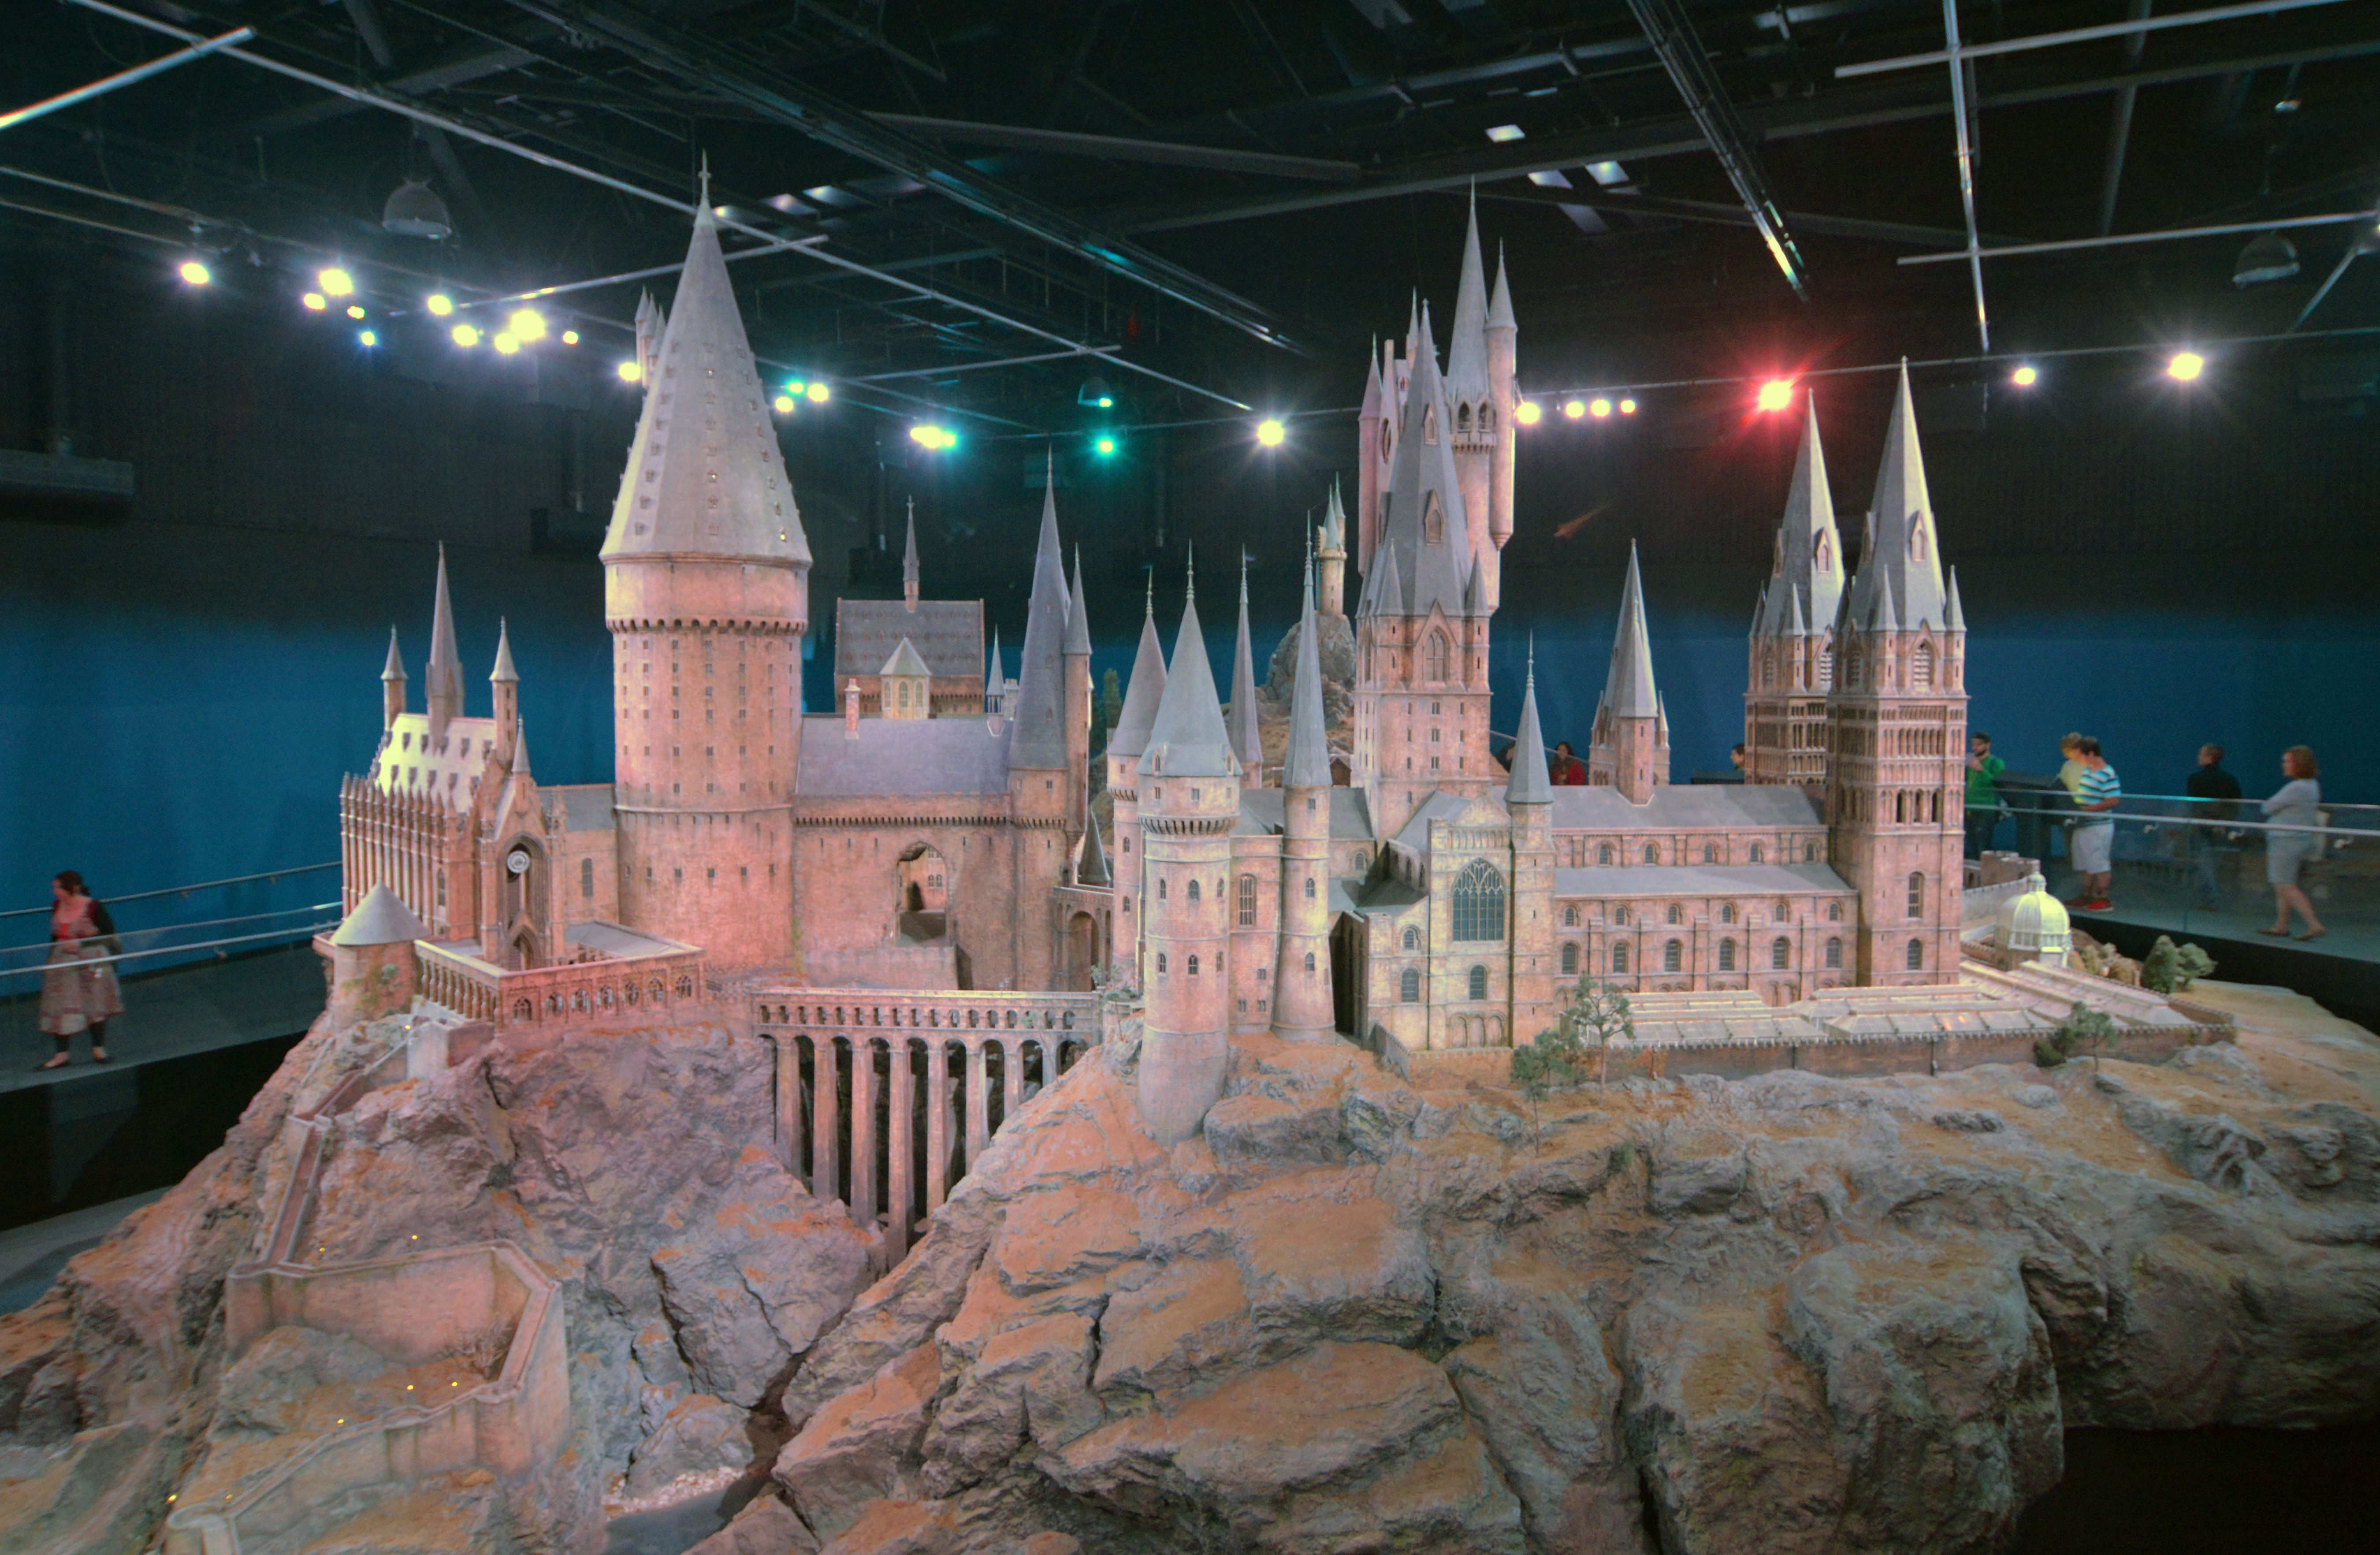 d057828c5cfcf3ff60a9e23f839ce959 - How Do I Get To Harry Potter World From London